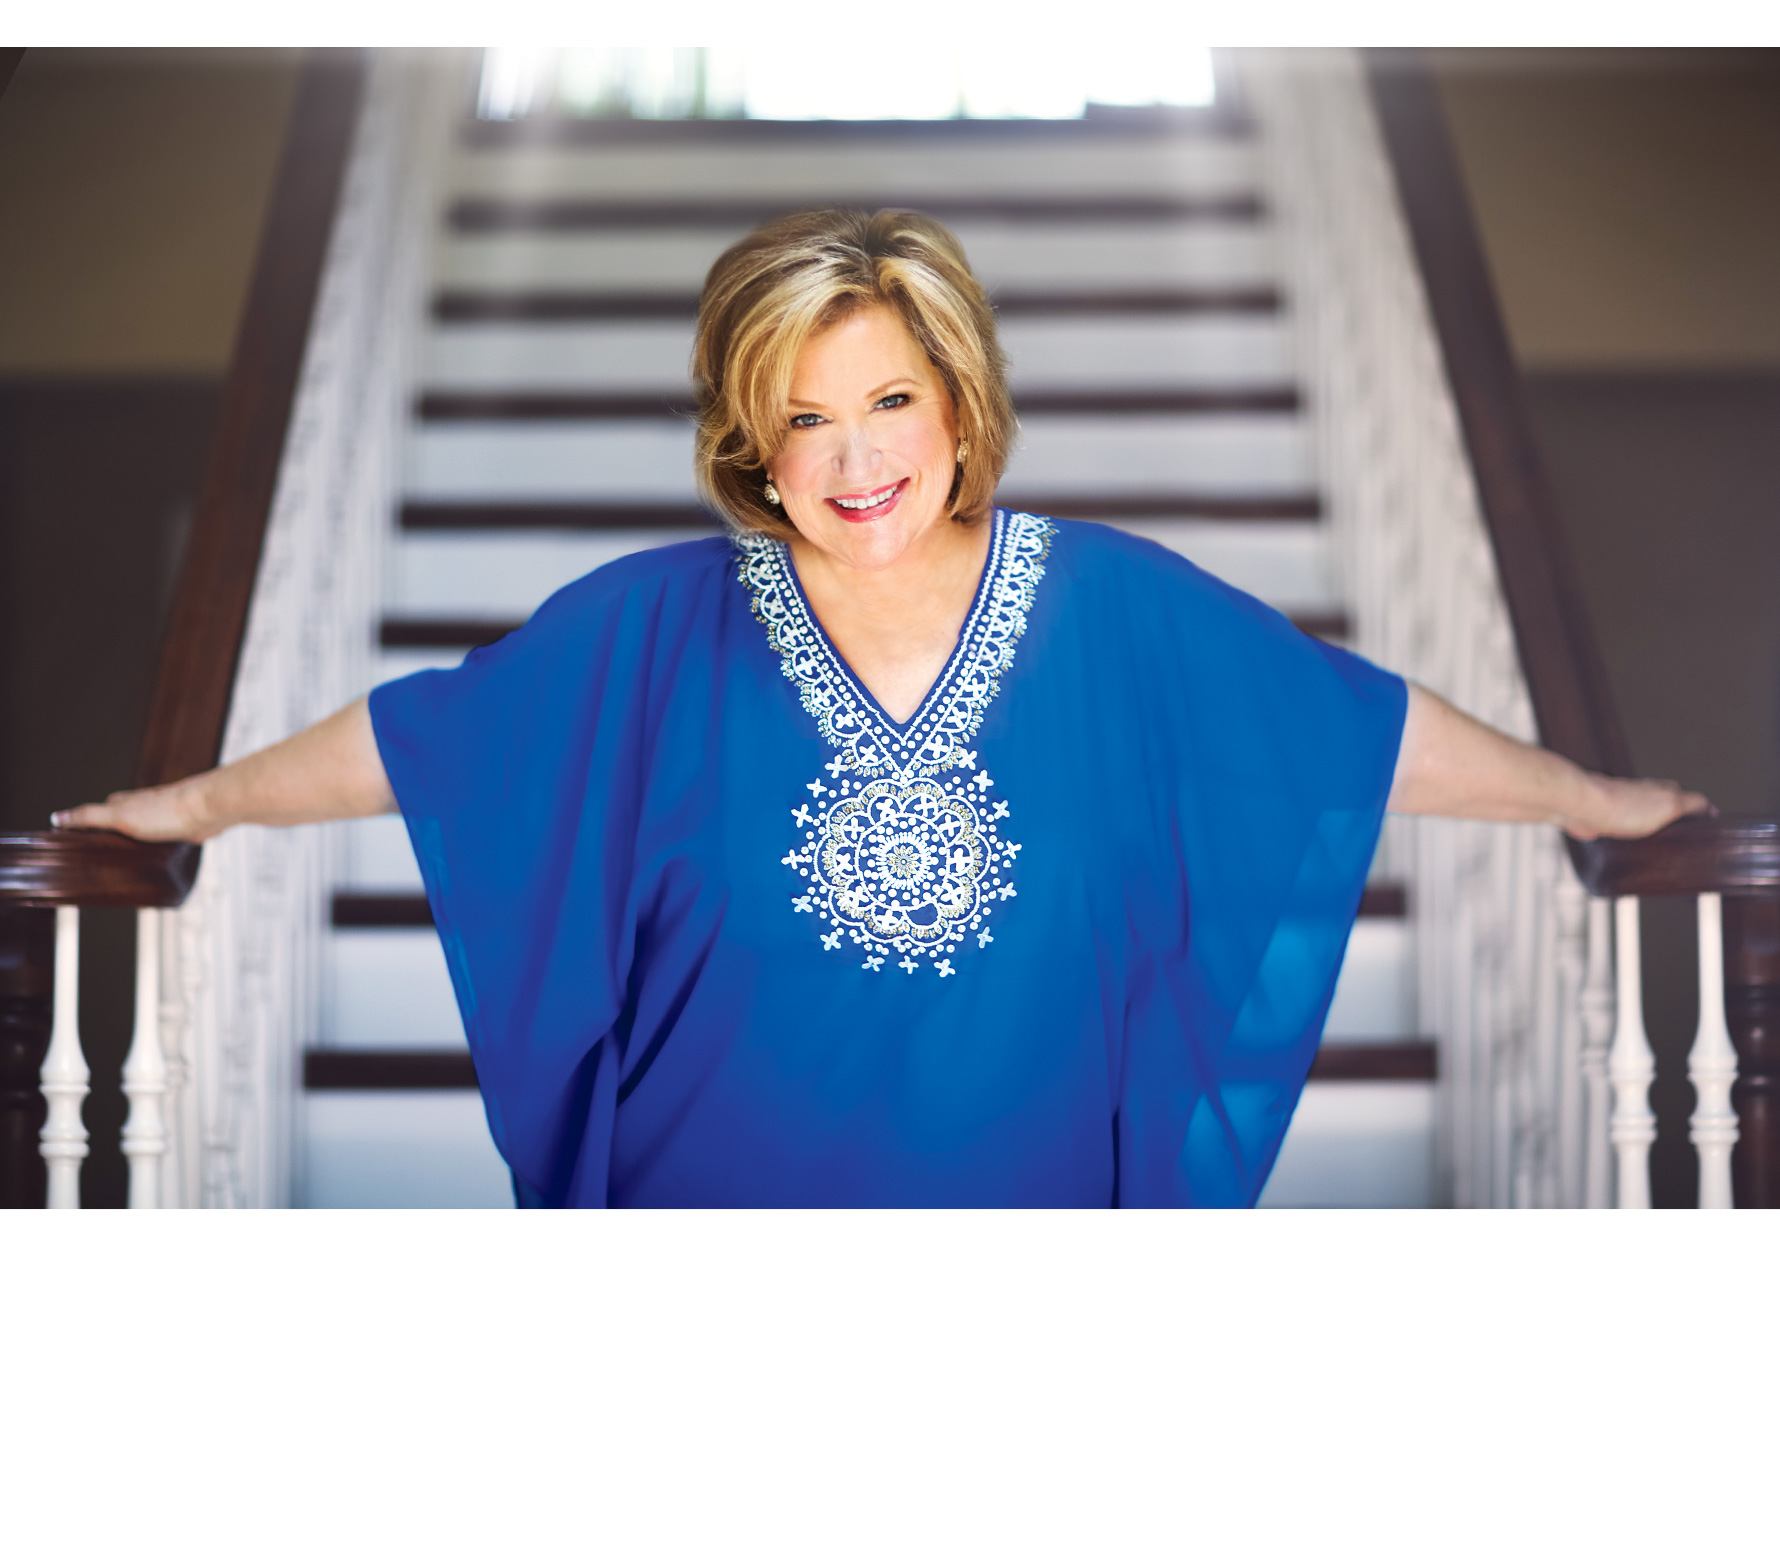 Christian music icon Sandi Patty coming to Trussville during Farewell Tour